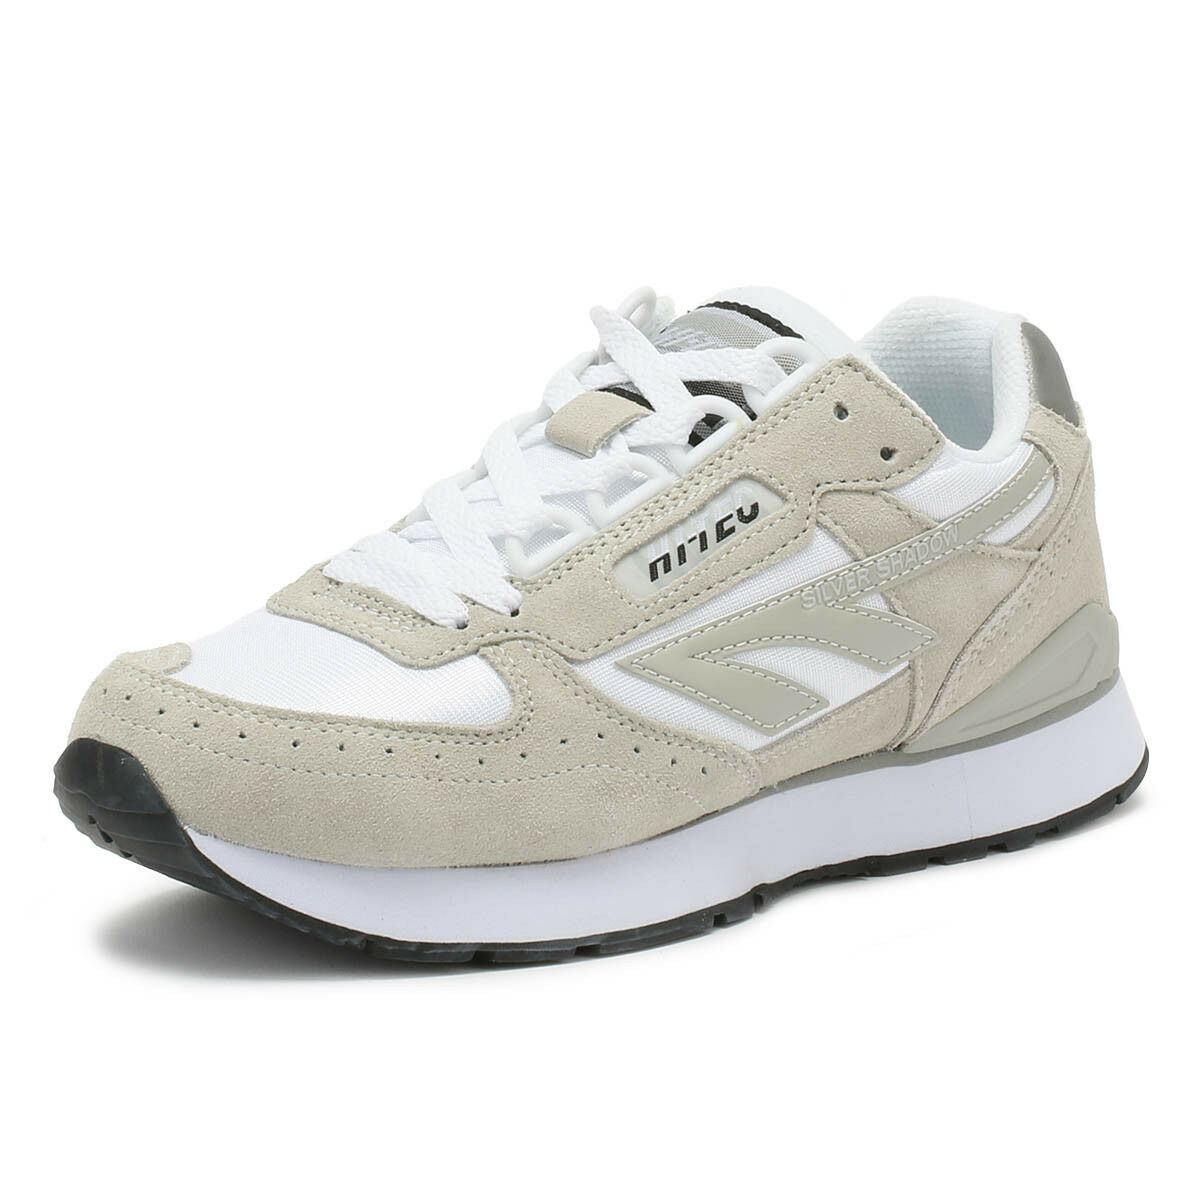 6c9877a905f Hi-Tec Unisex Trainers Silver Shadow Grey Lace Up Sport Casual shoes Cool  White otlokp3052-Women s Trainers